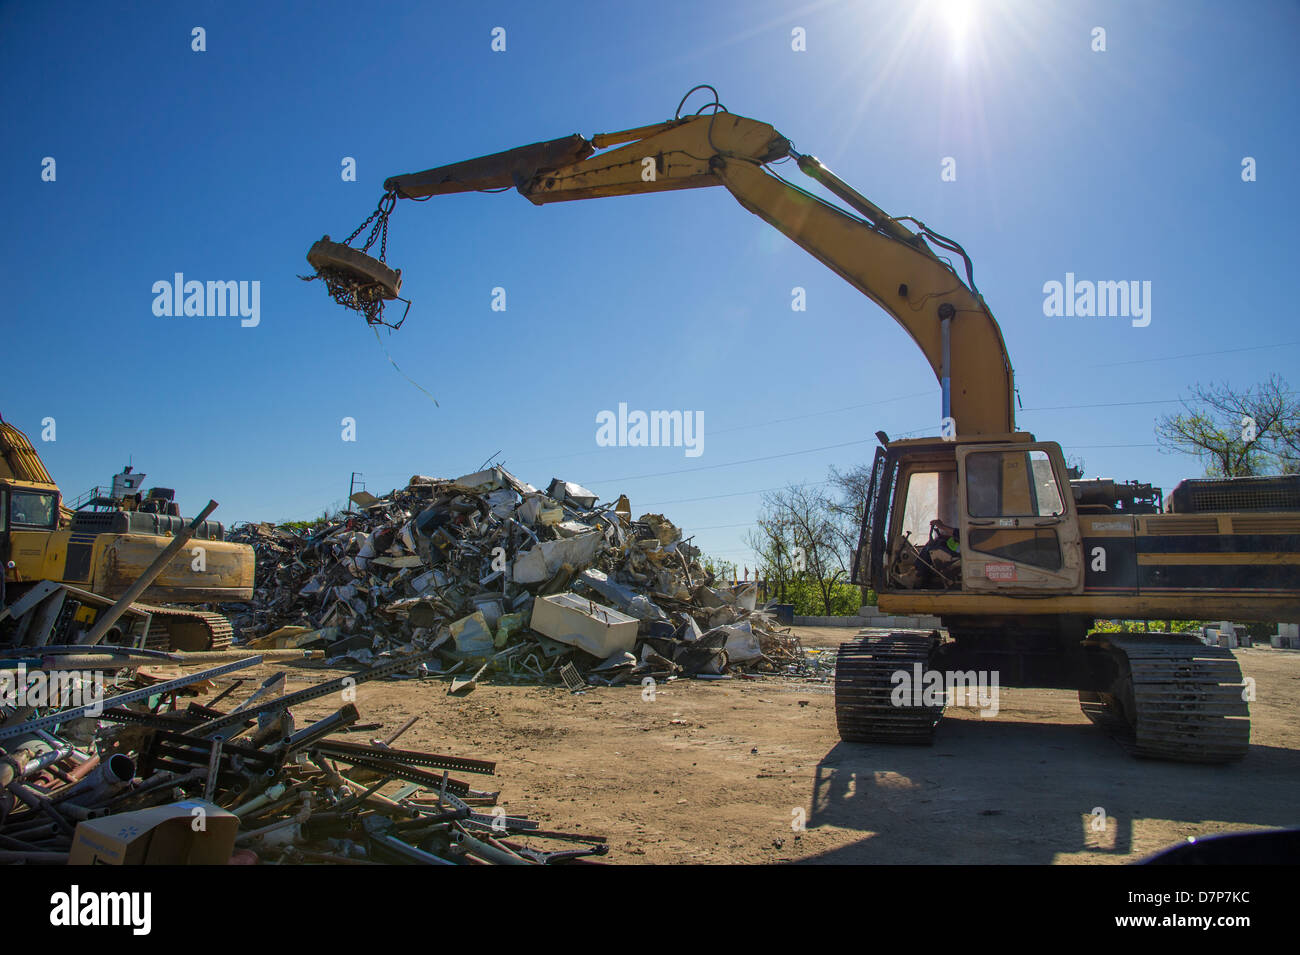 Crane With Magnet Picking Up Scrap Metal For Recycling In Junk ...